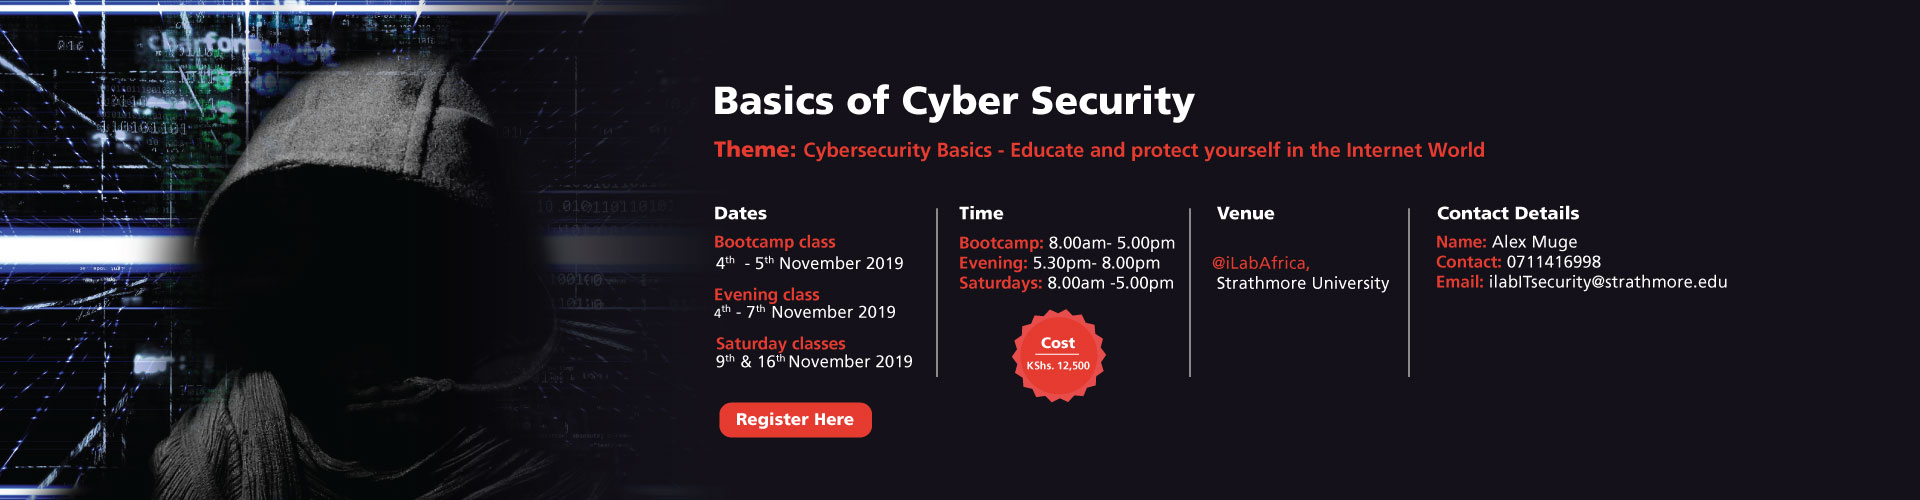 Basics-of-Cyber-security-website-banner